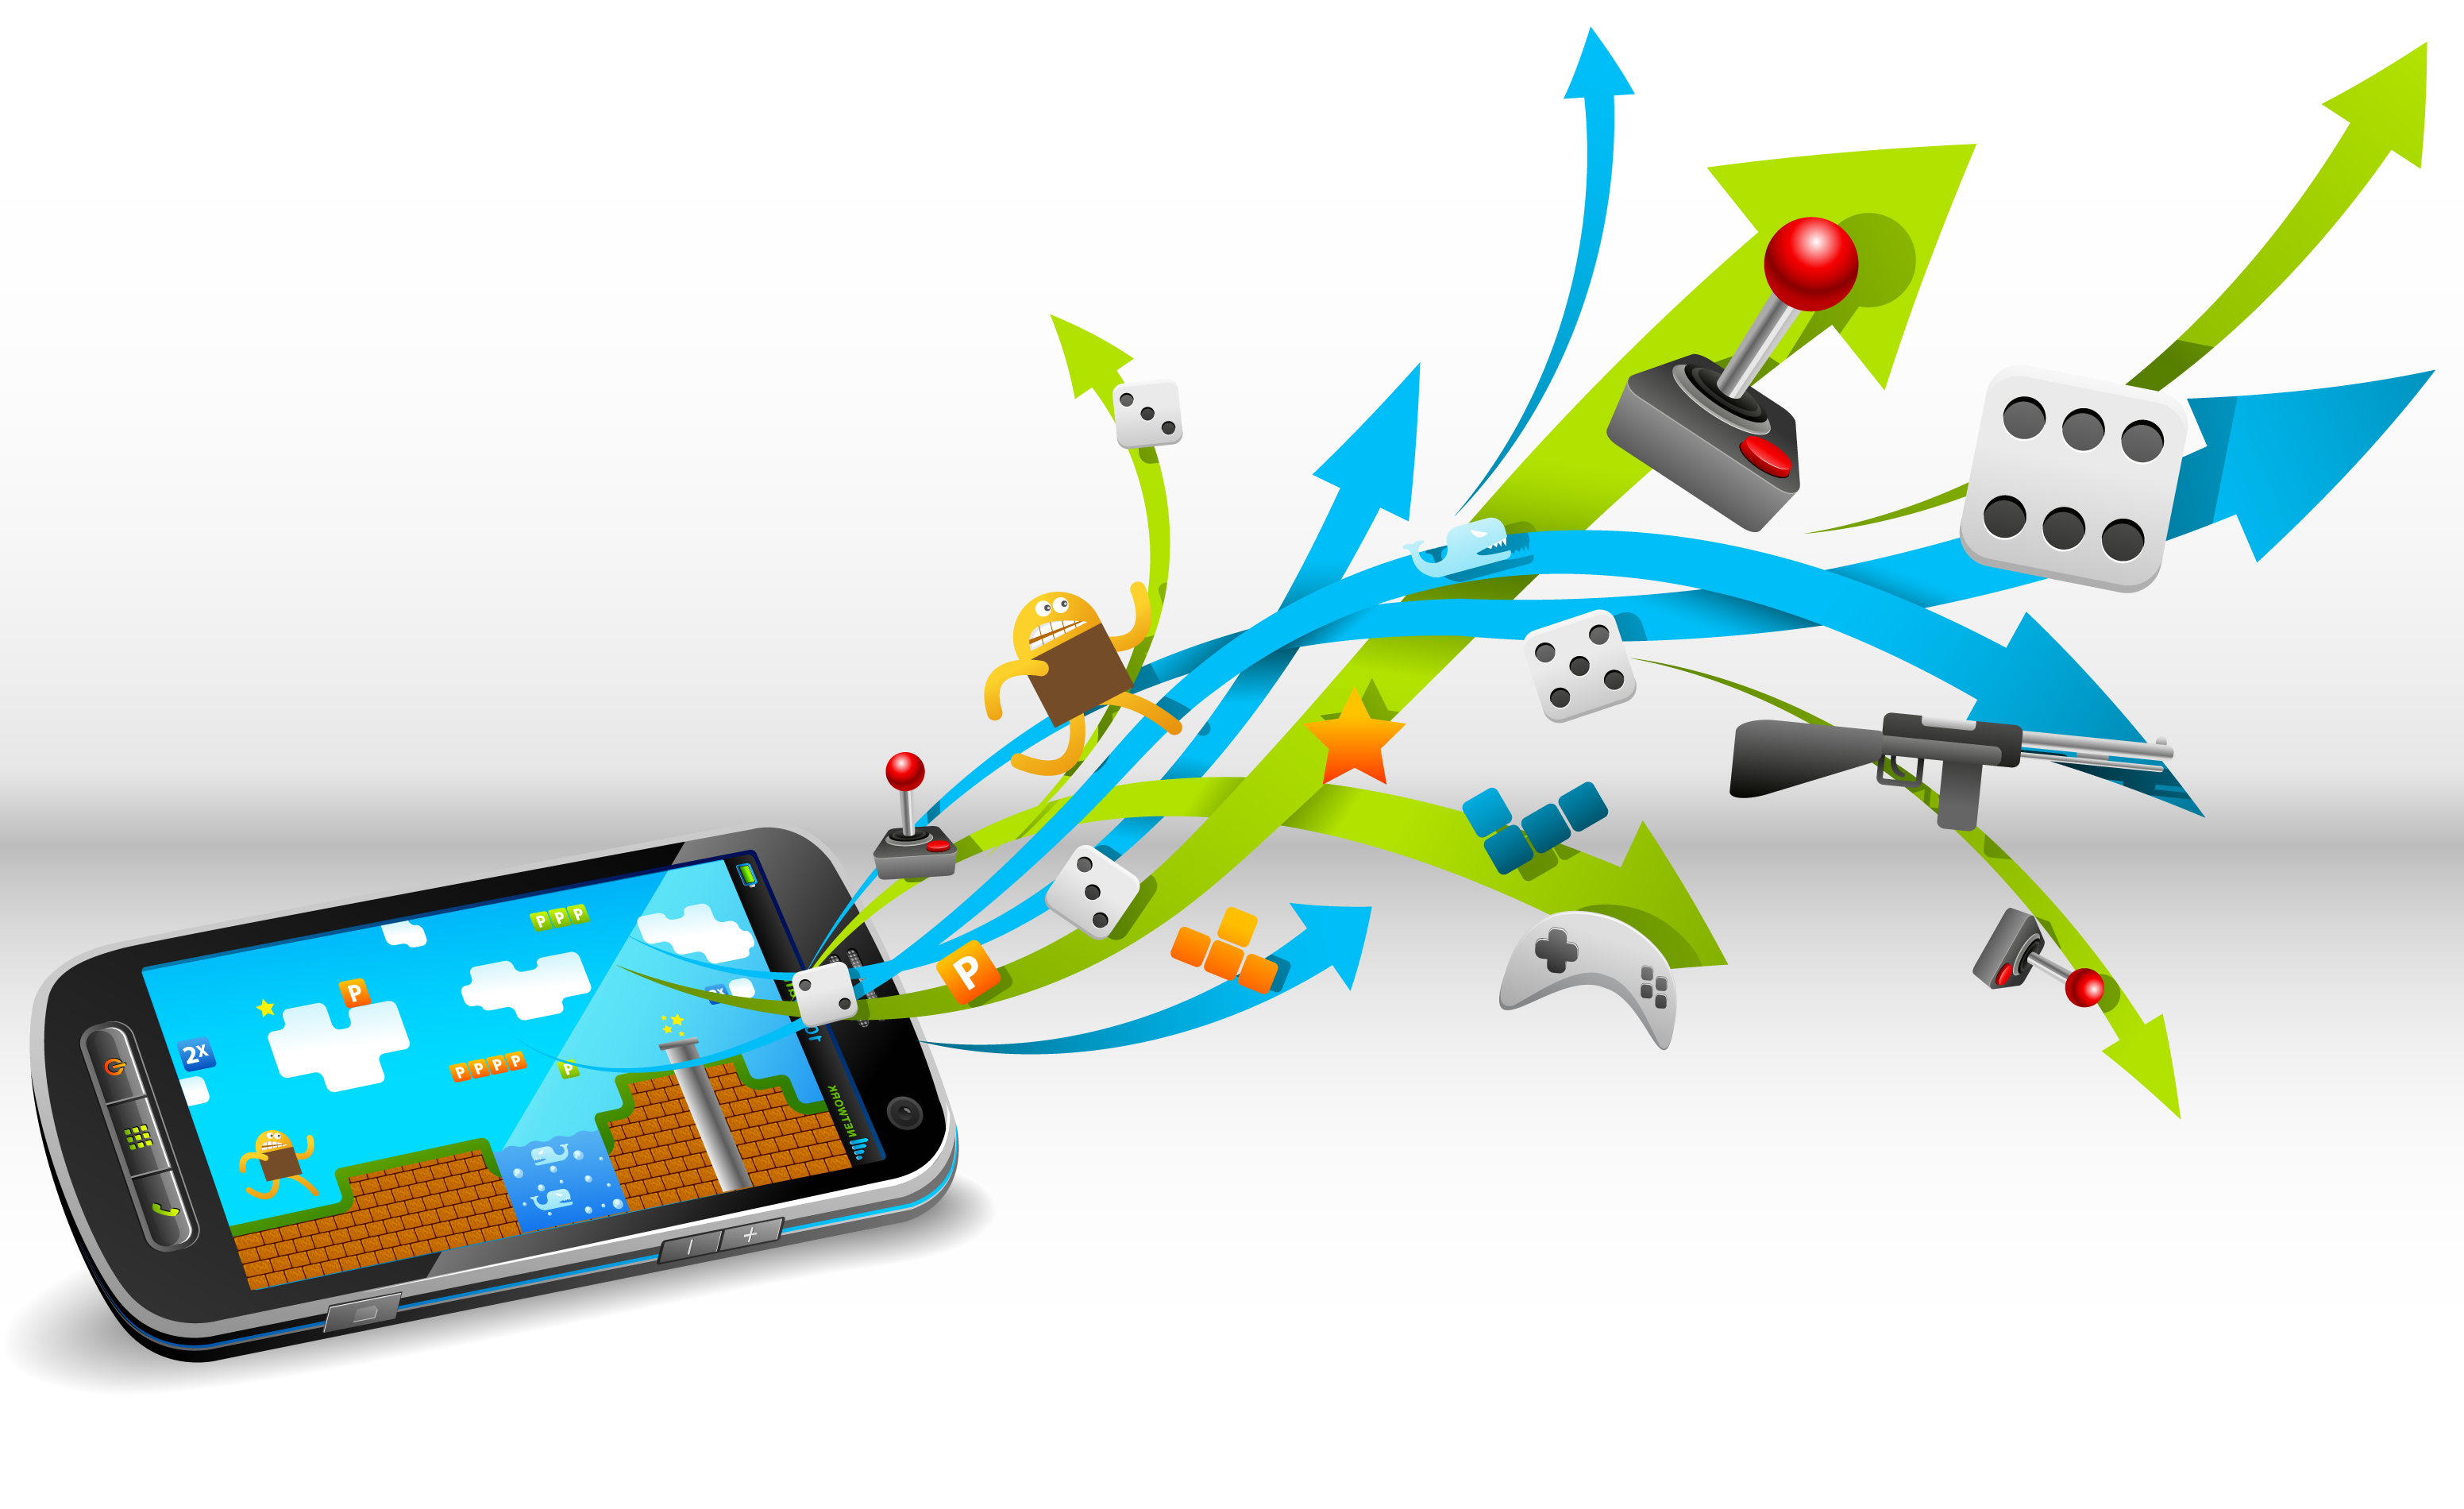 Consumer Spending On Mobile Game Apps Tripled In 2013